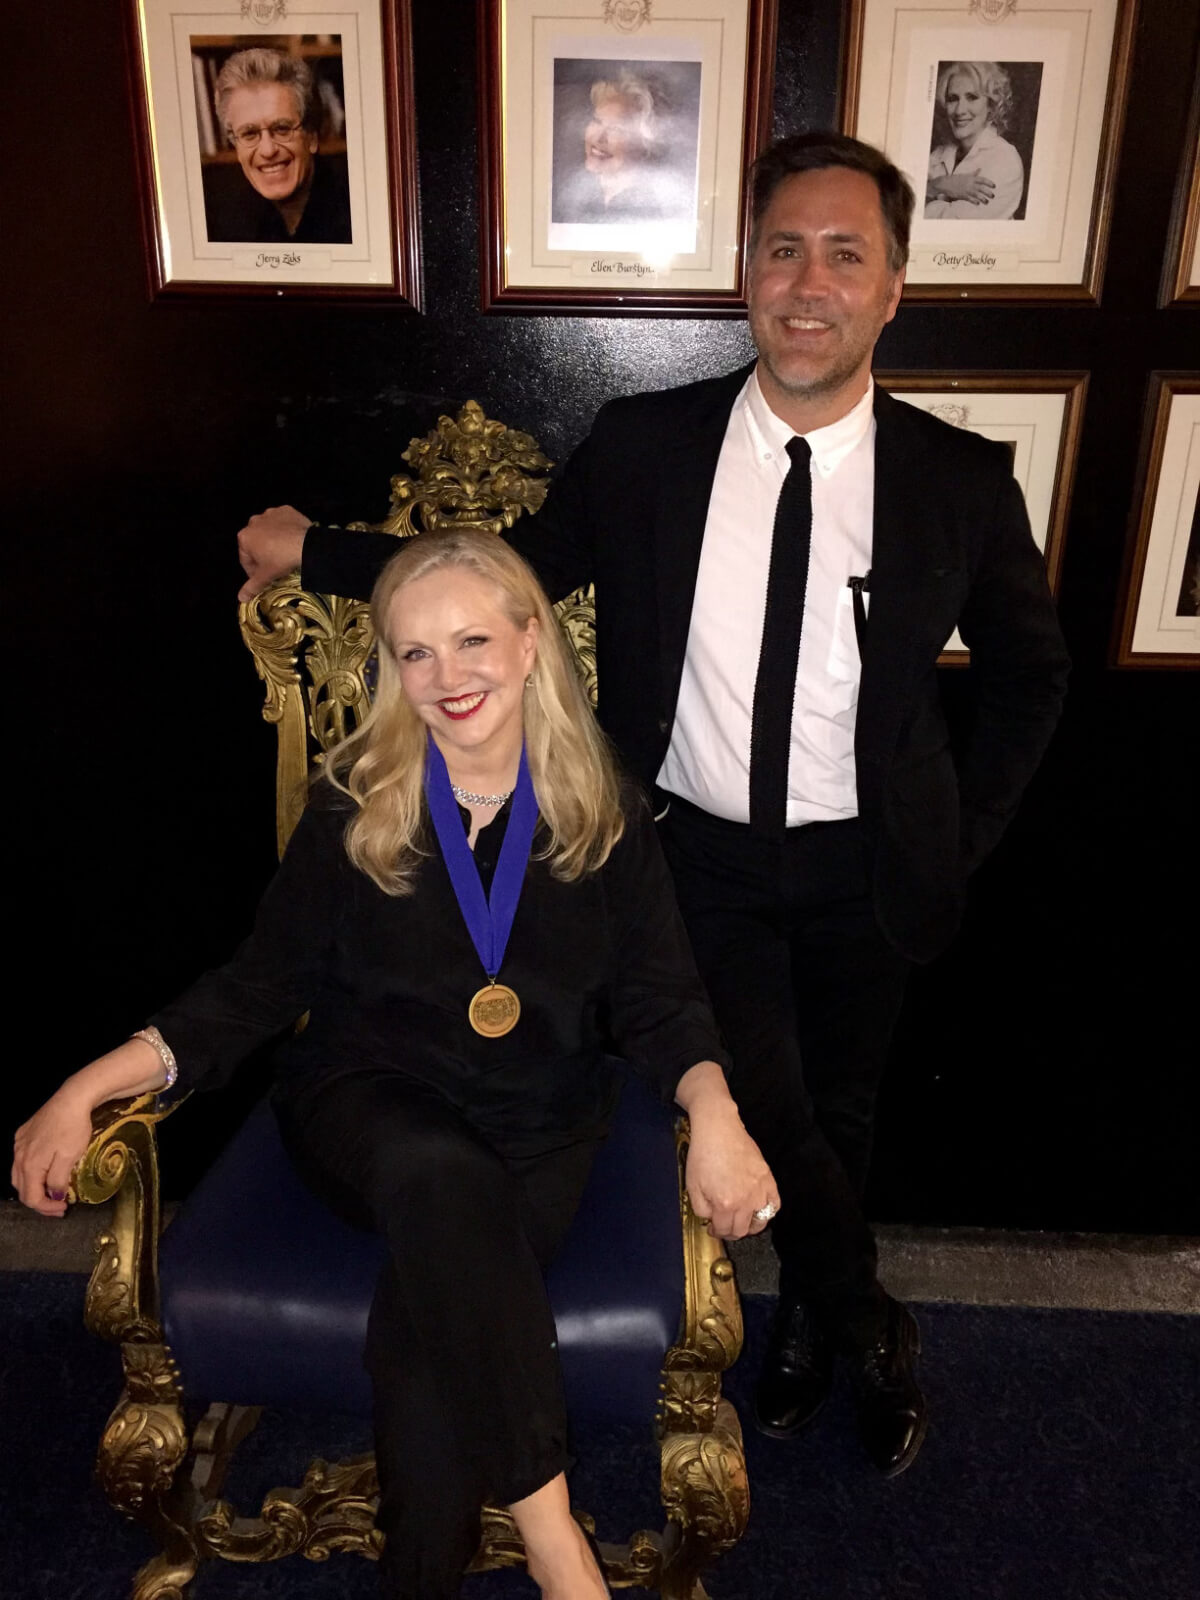 Susan Stroman and associate Scott Bishop at the Theater Hall Of Fame ceremony.